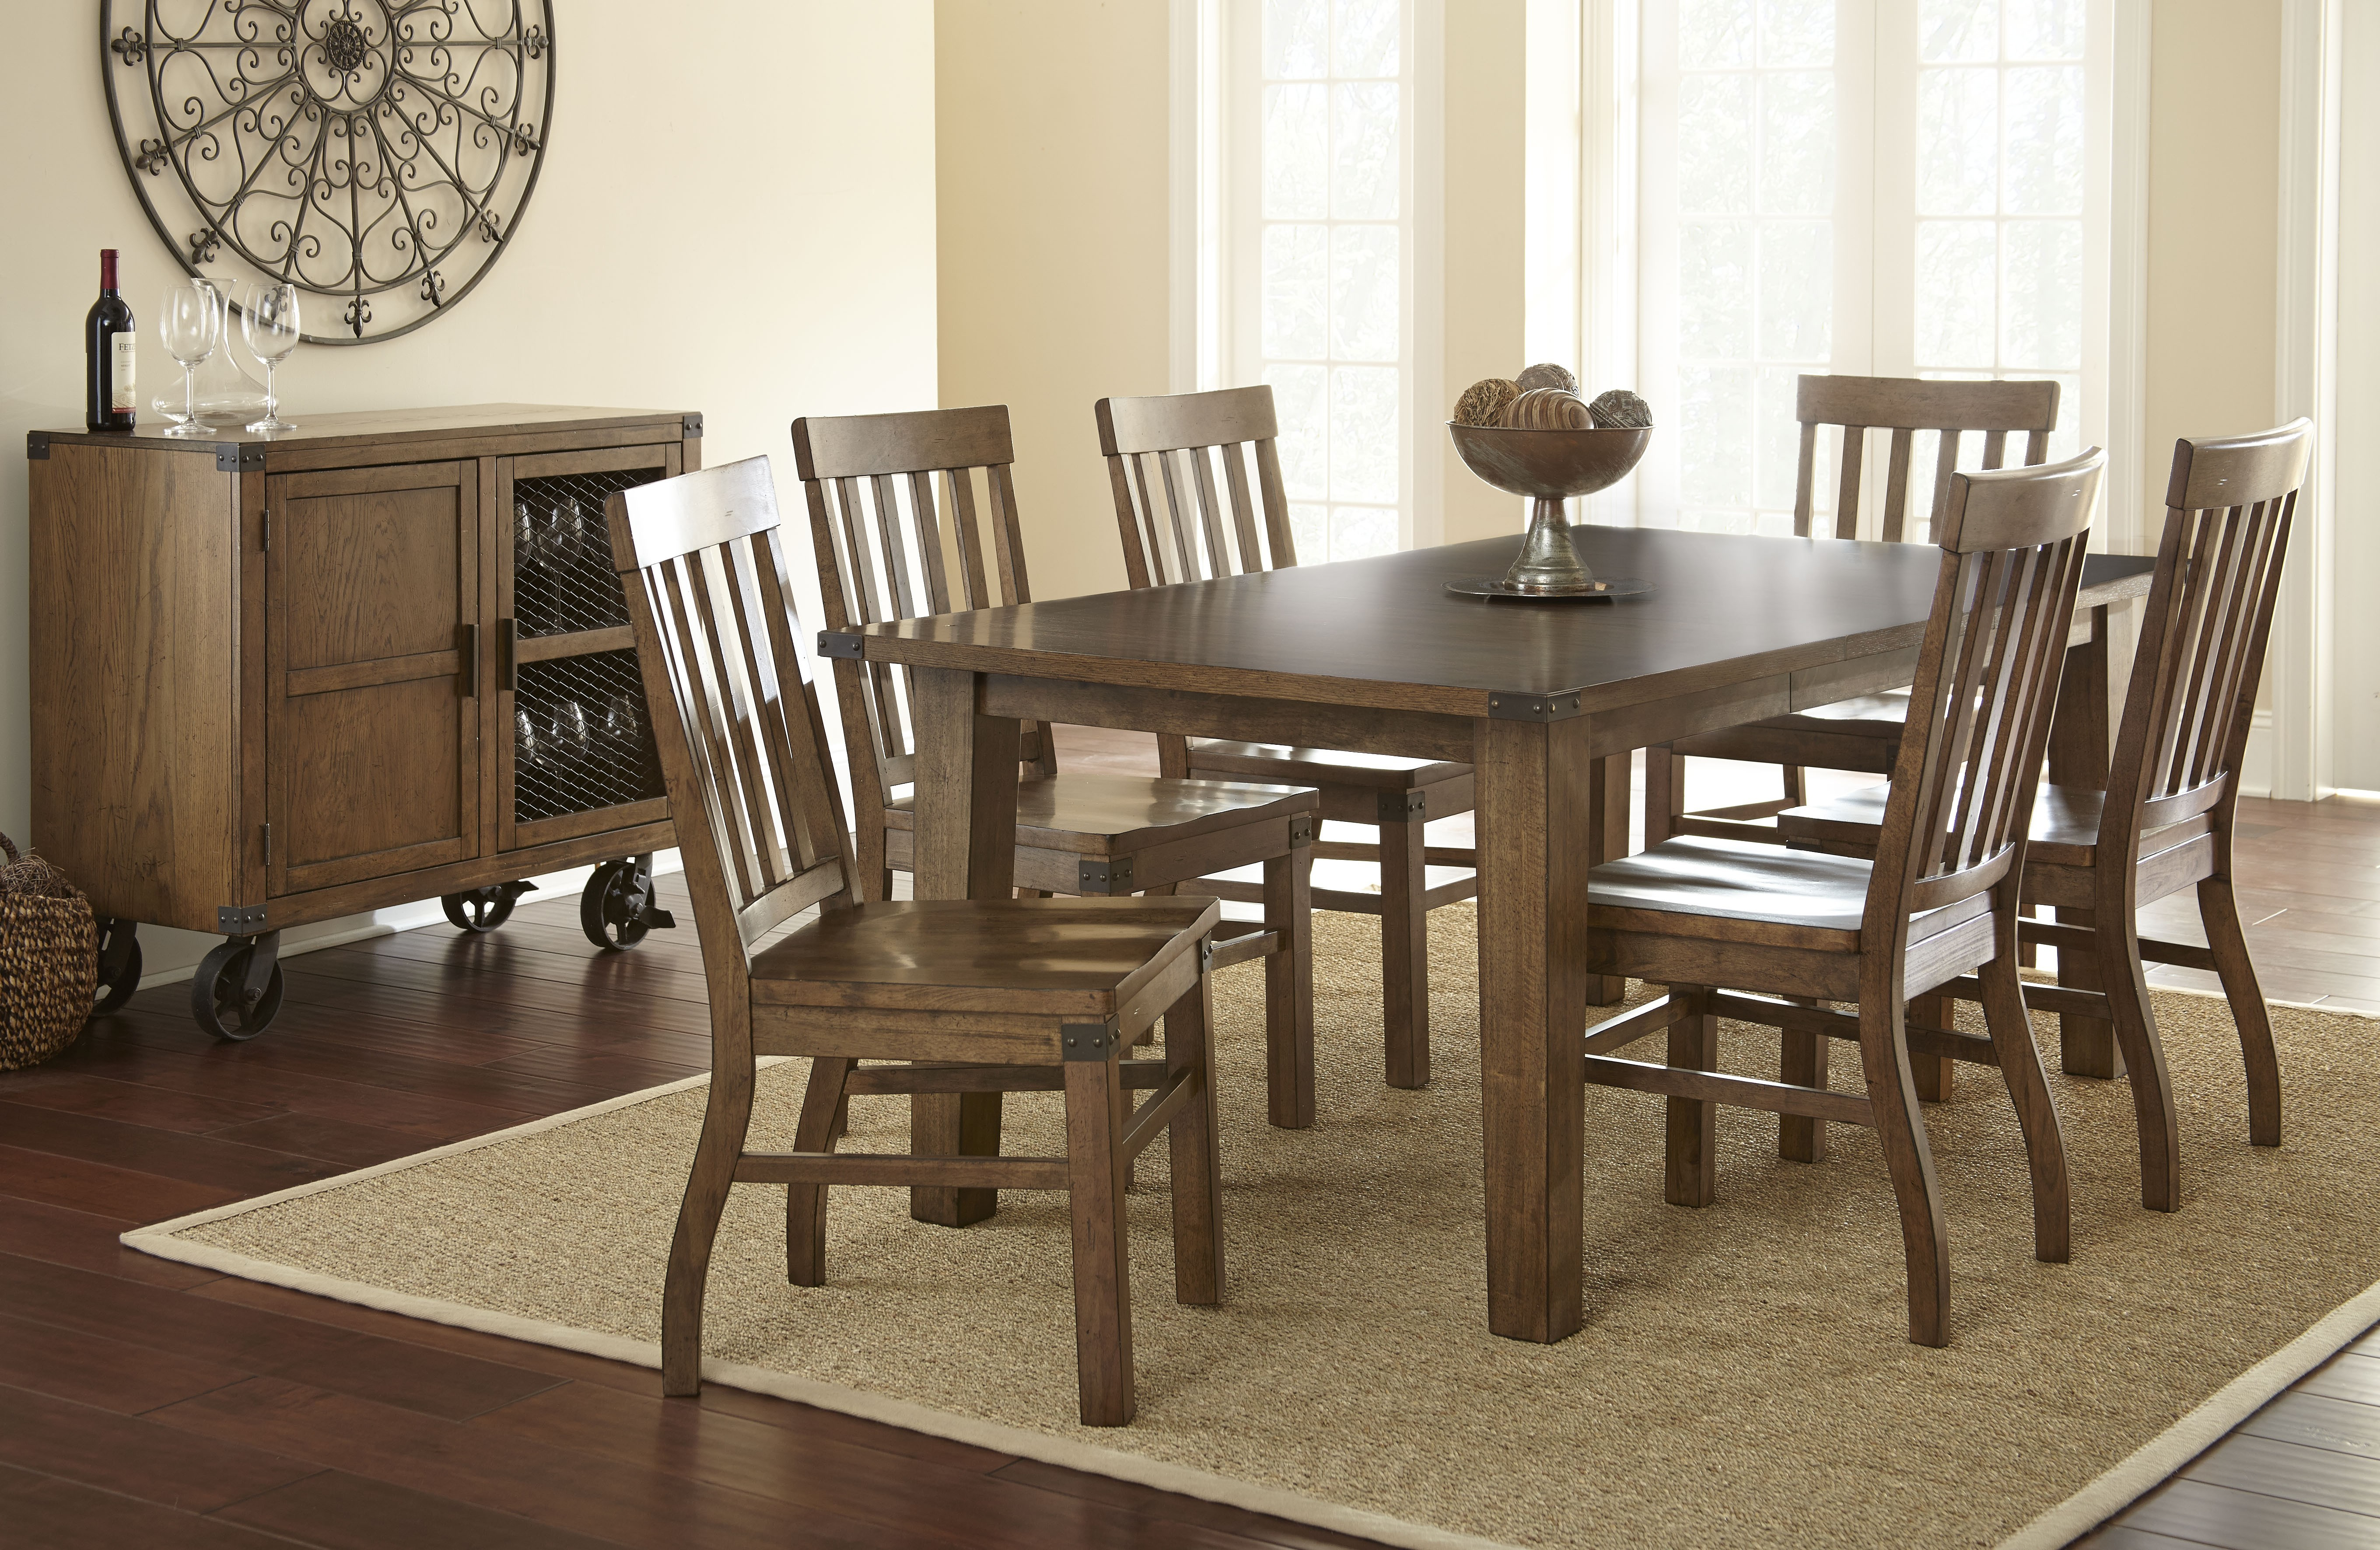 doerr furniture hailee dining table w 6 chairs